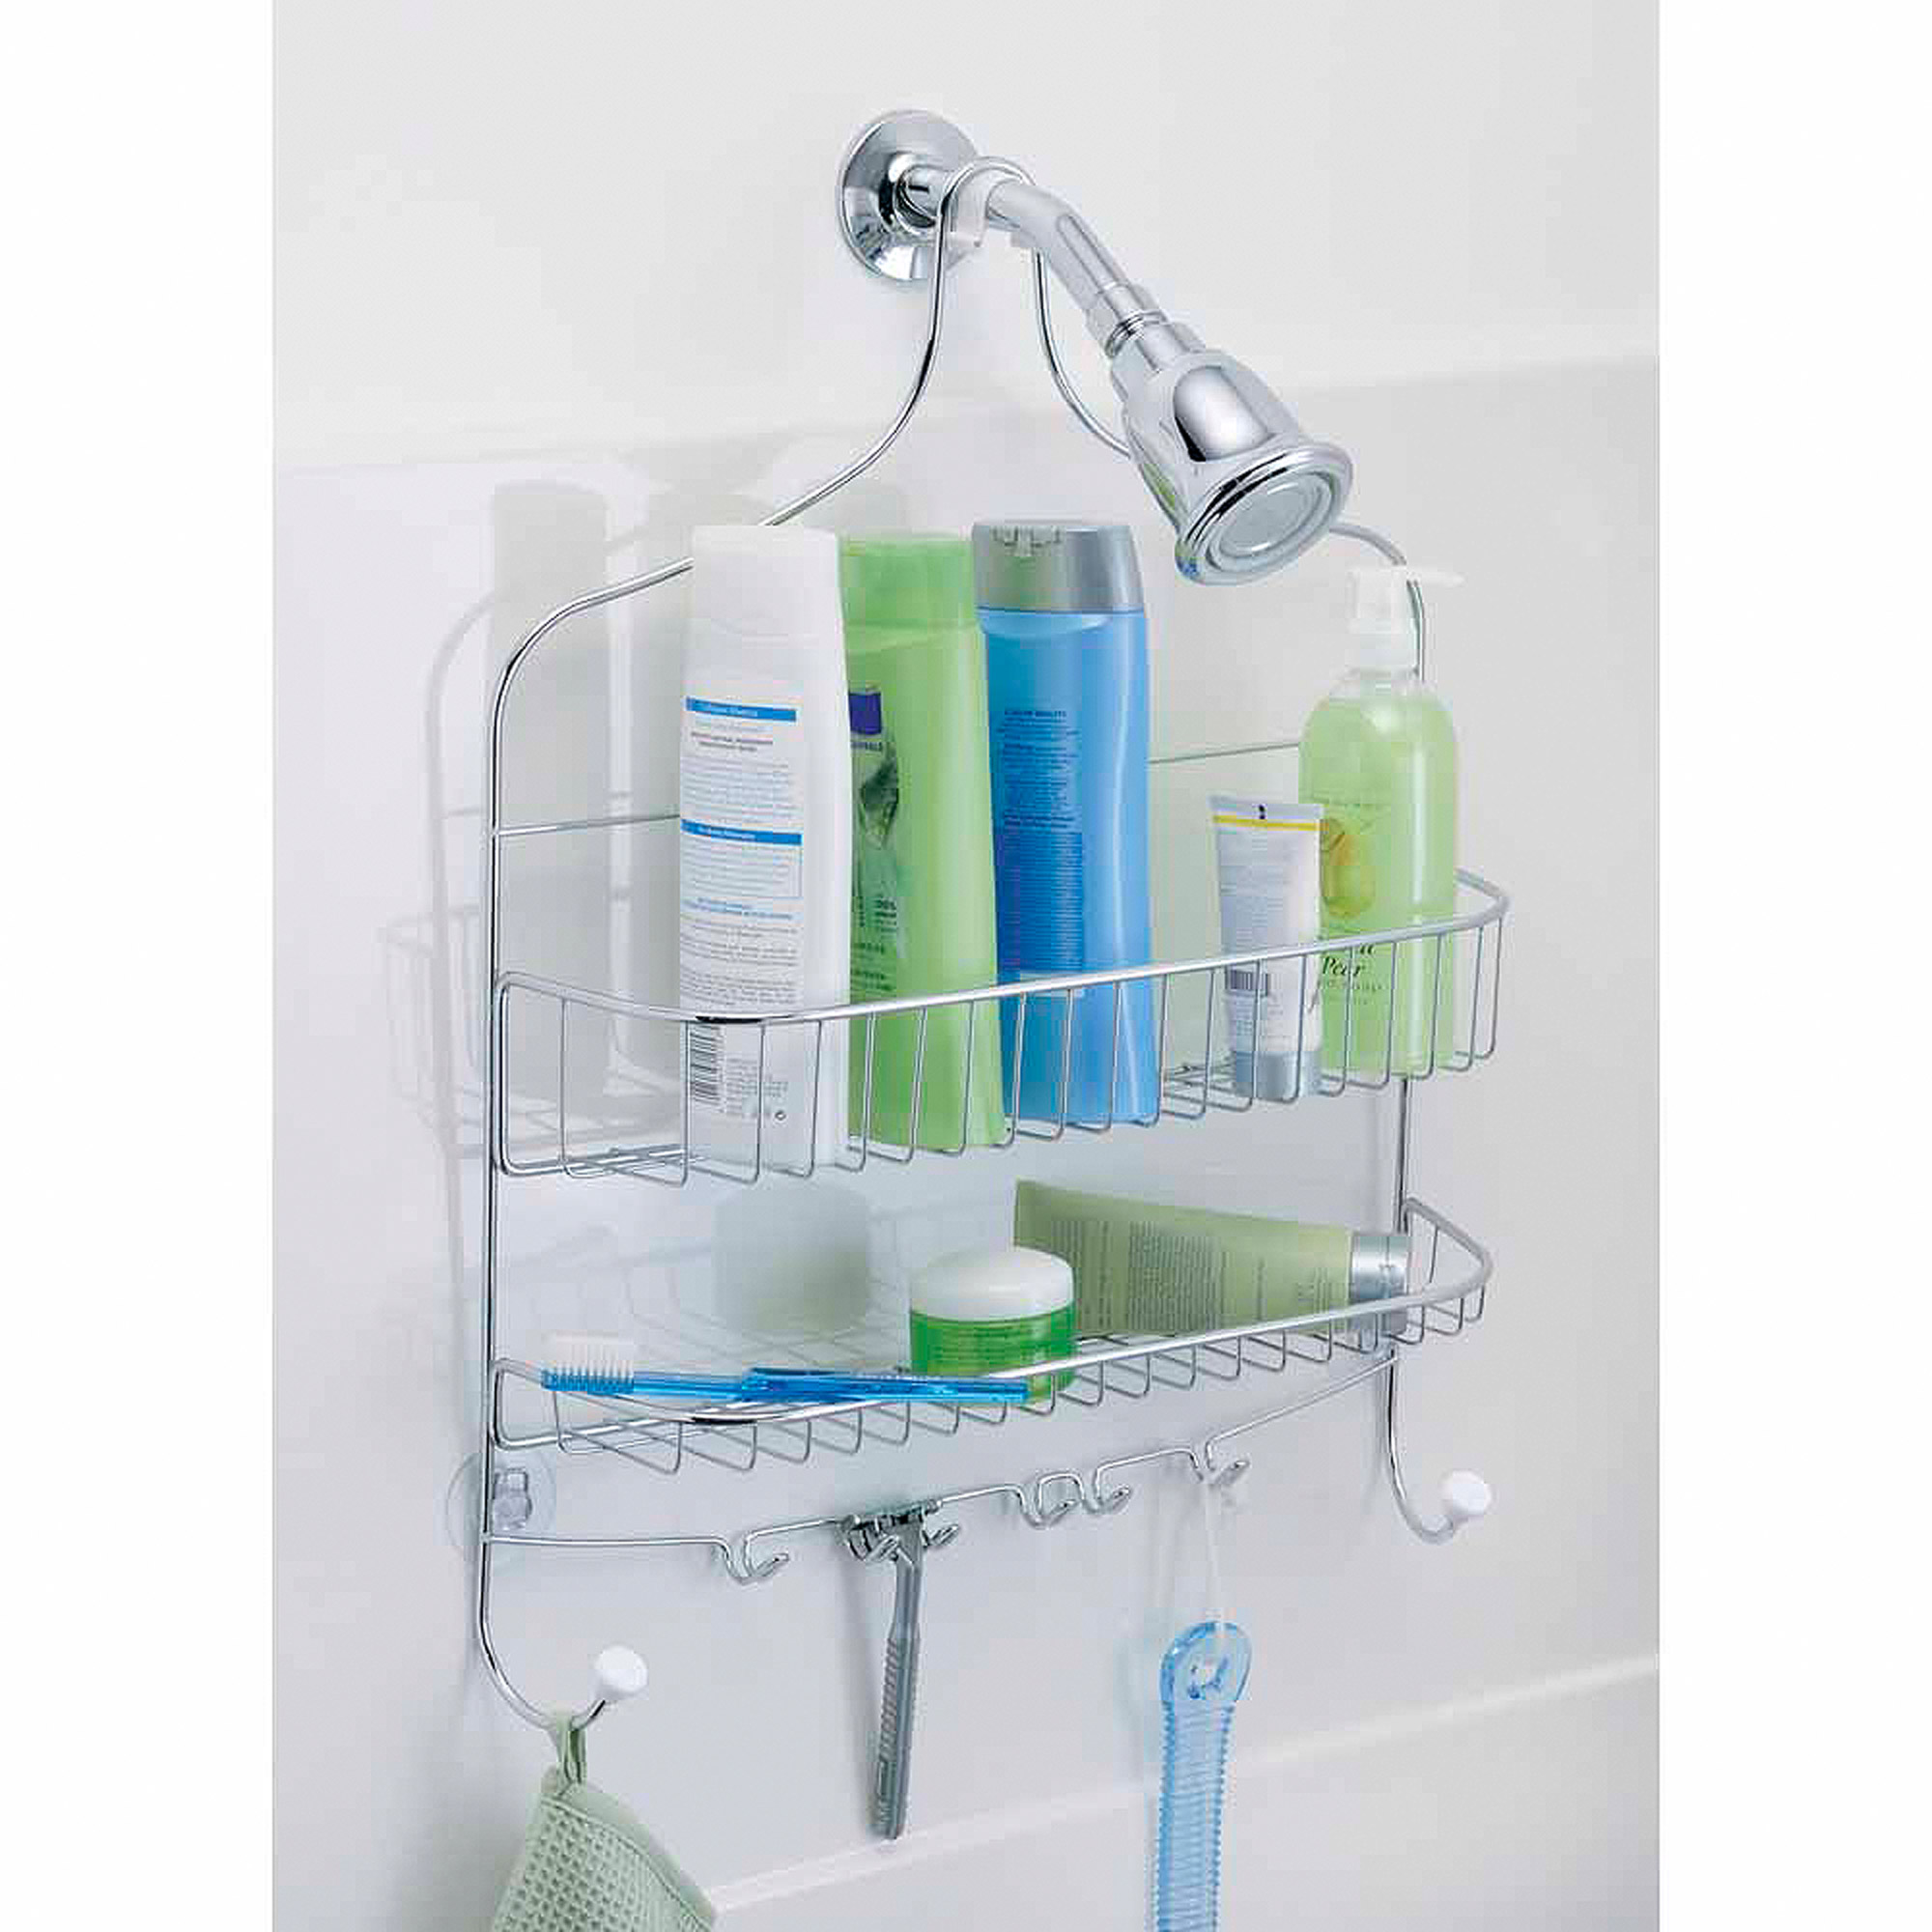 InterDesign Cero Wide Nesting Shower Caddy - Walmart.com